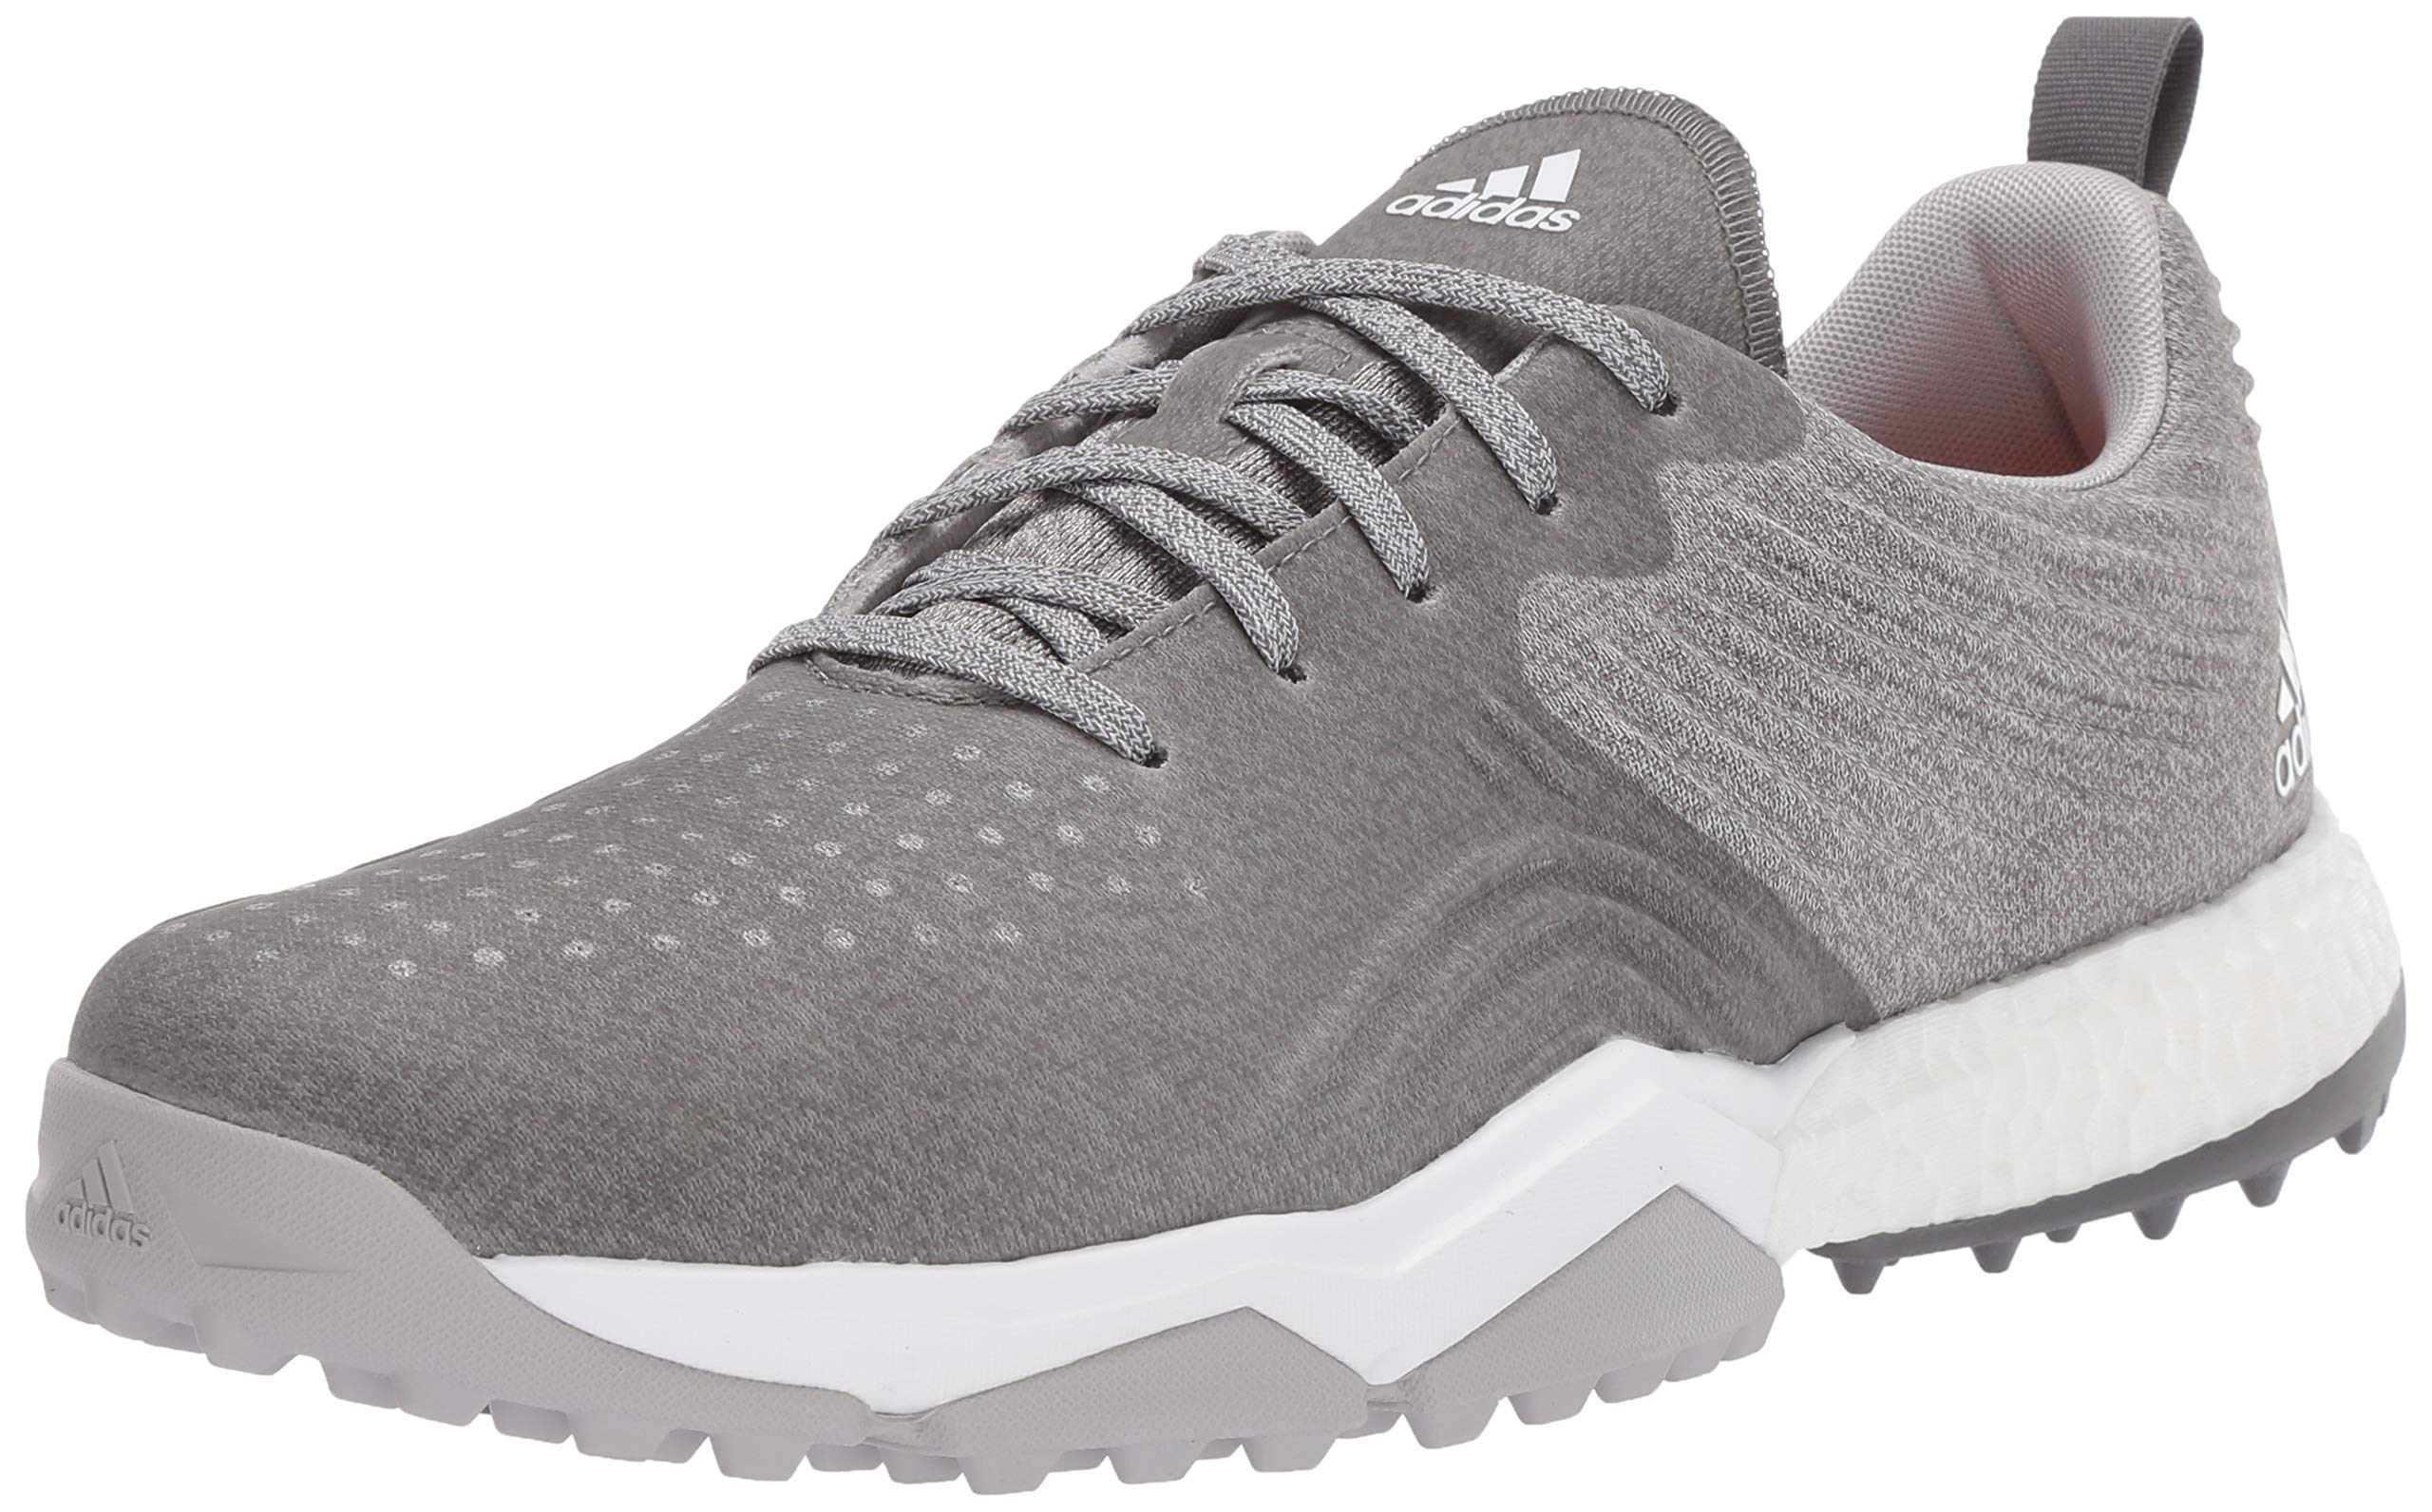 adidas Men's Adipower 4ORGED S Golf Shoe, Grey Two/Grey Four/raw Amber, 11.5 M US by adidas